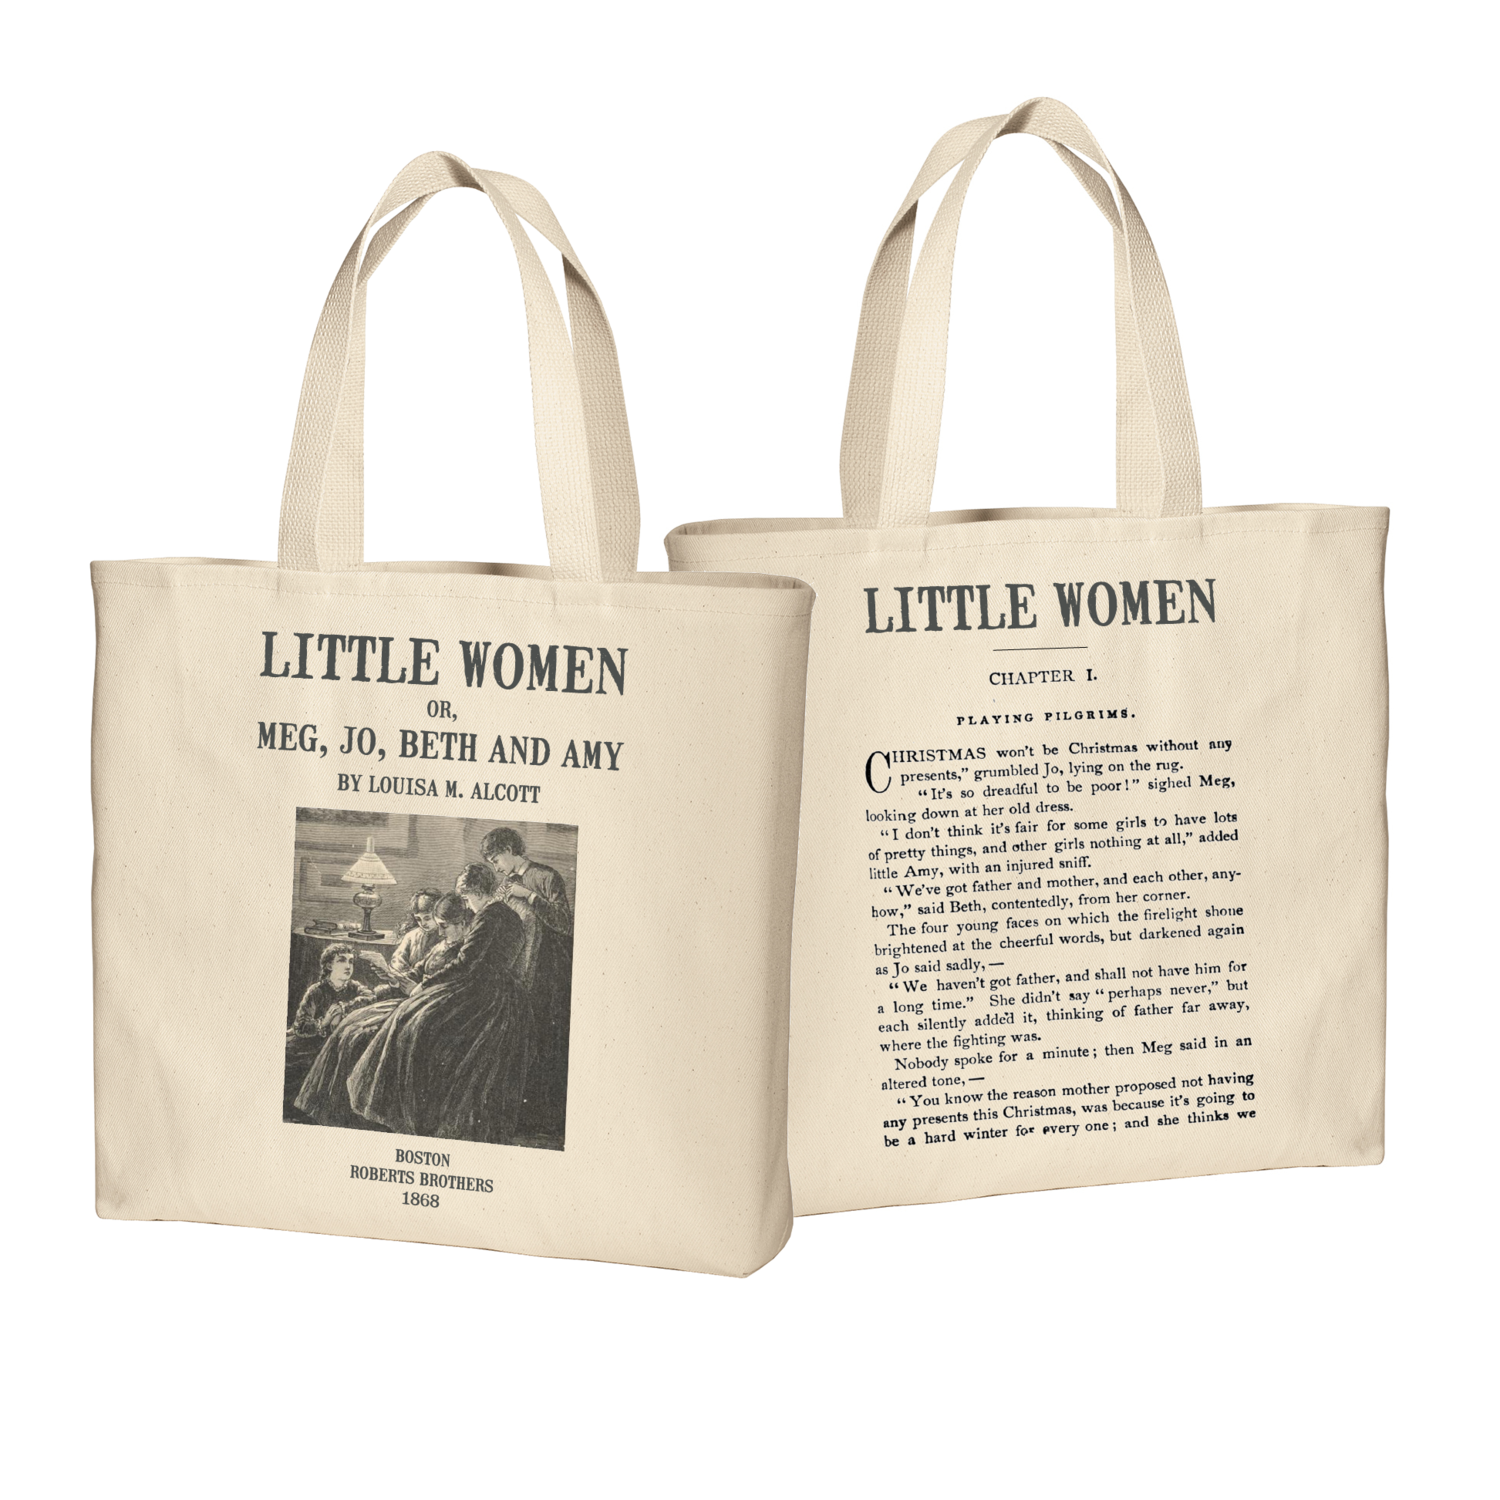 Little Women by Louisa M. Alcott Tote